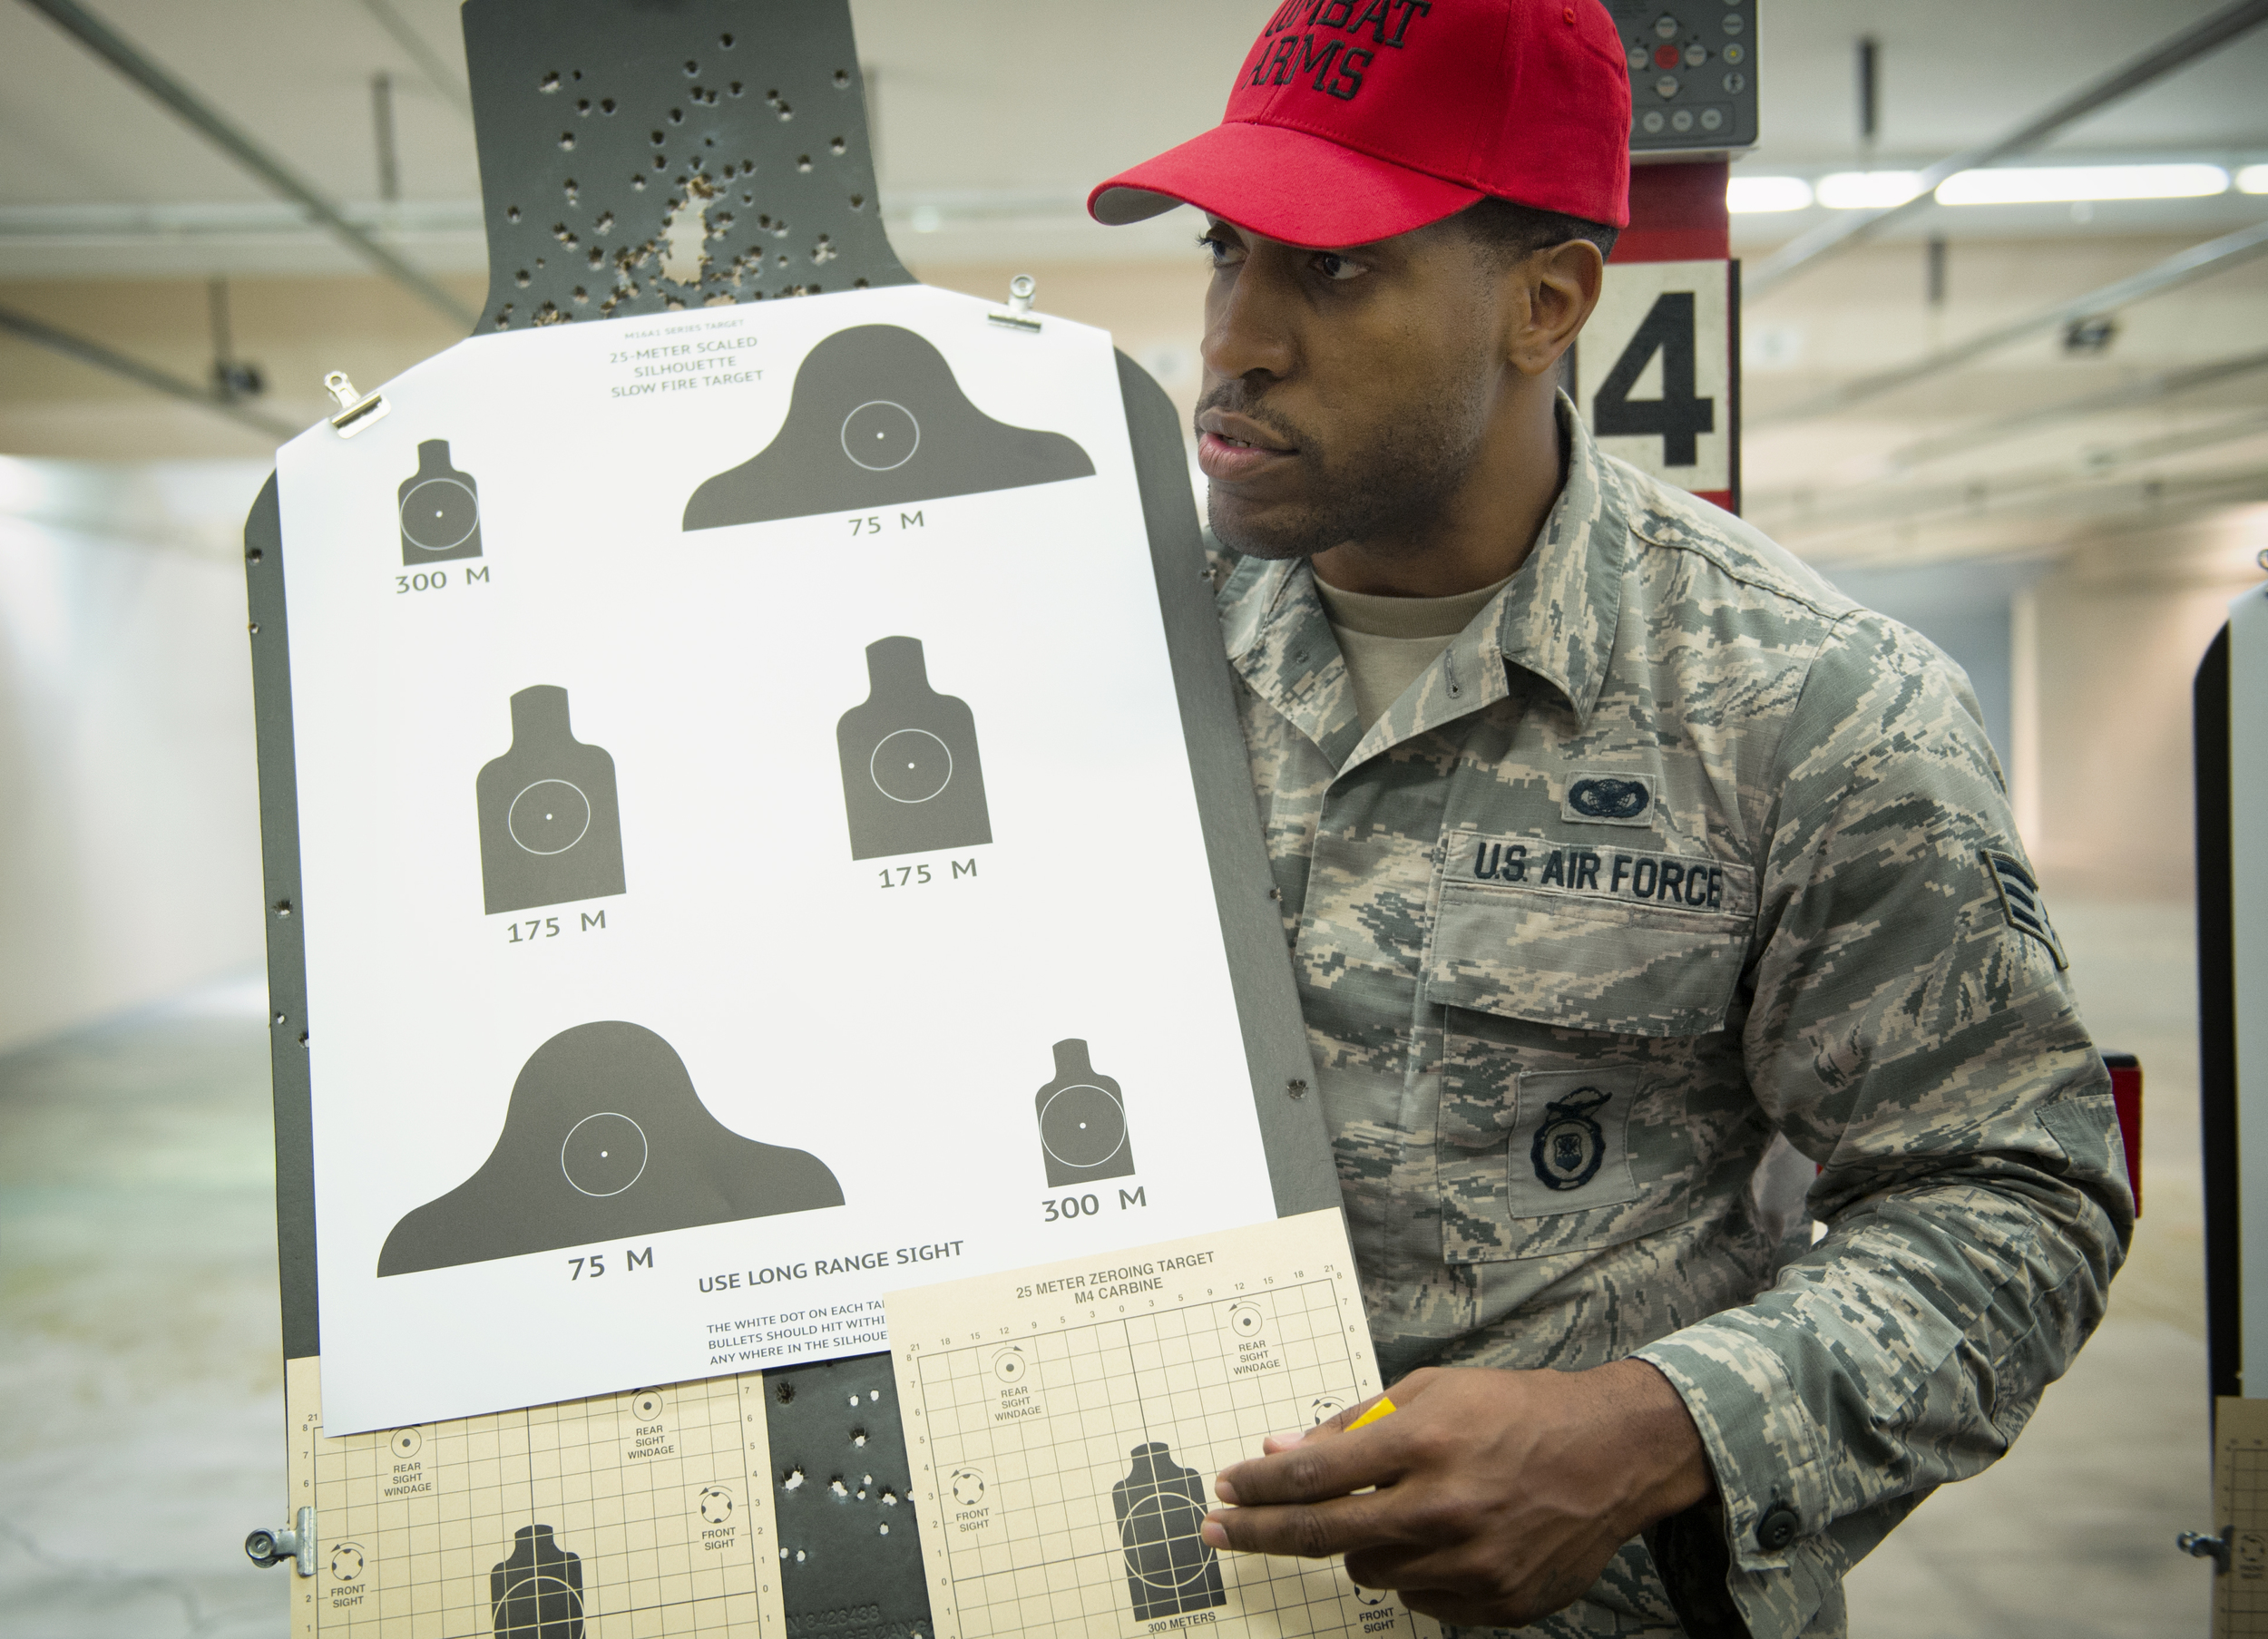 Senior Airman Dominique Adams, 374th Security Forces Squadron combat arms instructor, briefs students on proper weapon aiming and positioning techniques at Yokota Air Base, Japan, Oct. 8, 2015. The combat arms maintenance and training trains between 2,500 - 3,000 students each year. (U.S. Air Force photo by Airman 1st Class Delano Scott/Released)